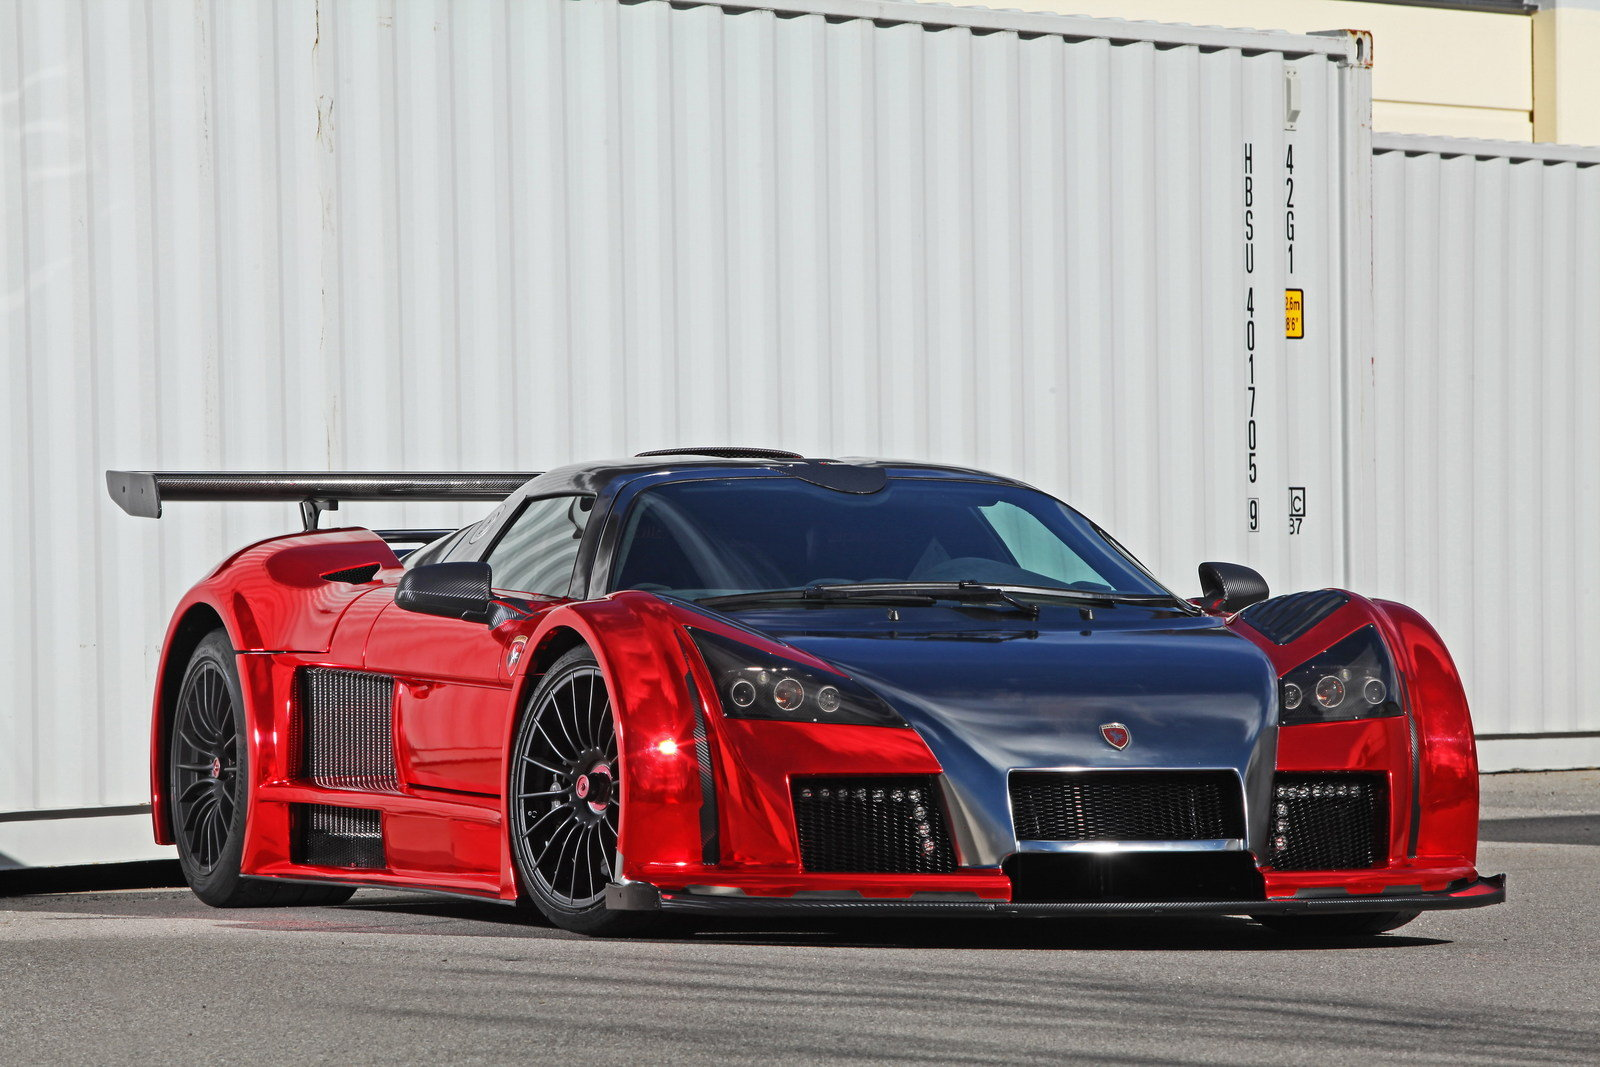 Toyota Of Plano >> 2013 Gumpert Apollo S Ironcar By 2M Designs | Top Speed